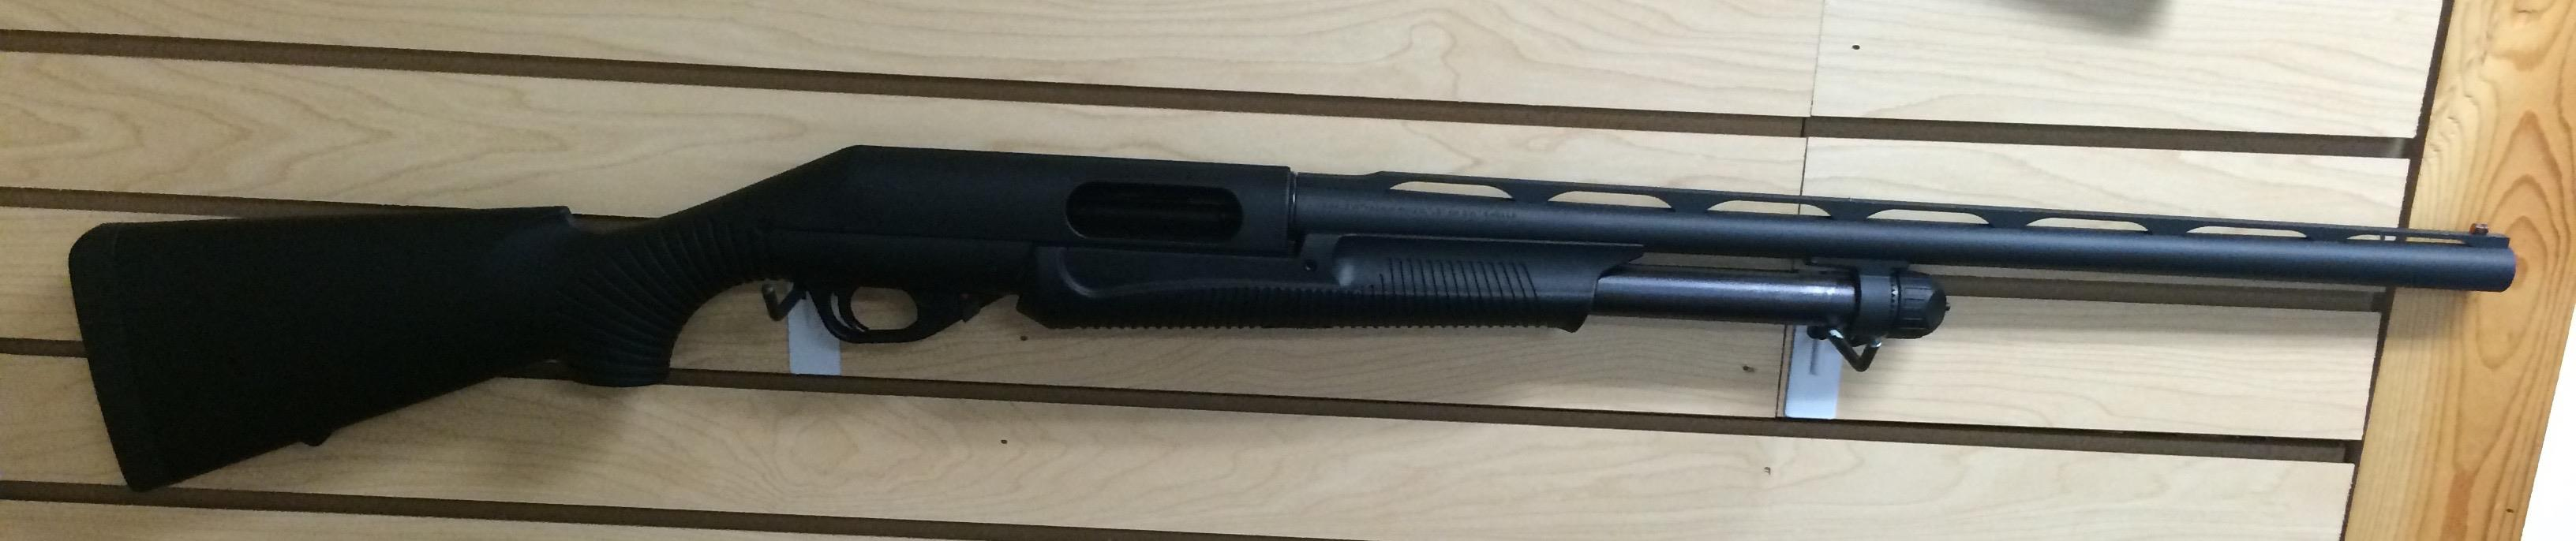 "BENELLI NOVA 12GA SYNTHETIC 24"" MINT CONDITION FREE SHIP!  Guns > Shotguns > Benelli Shotguns > Sporting"